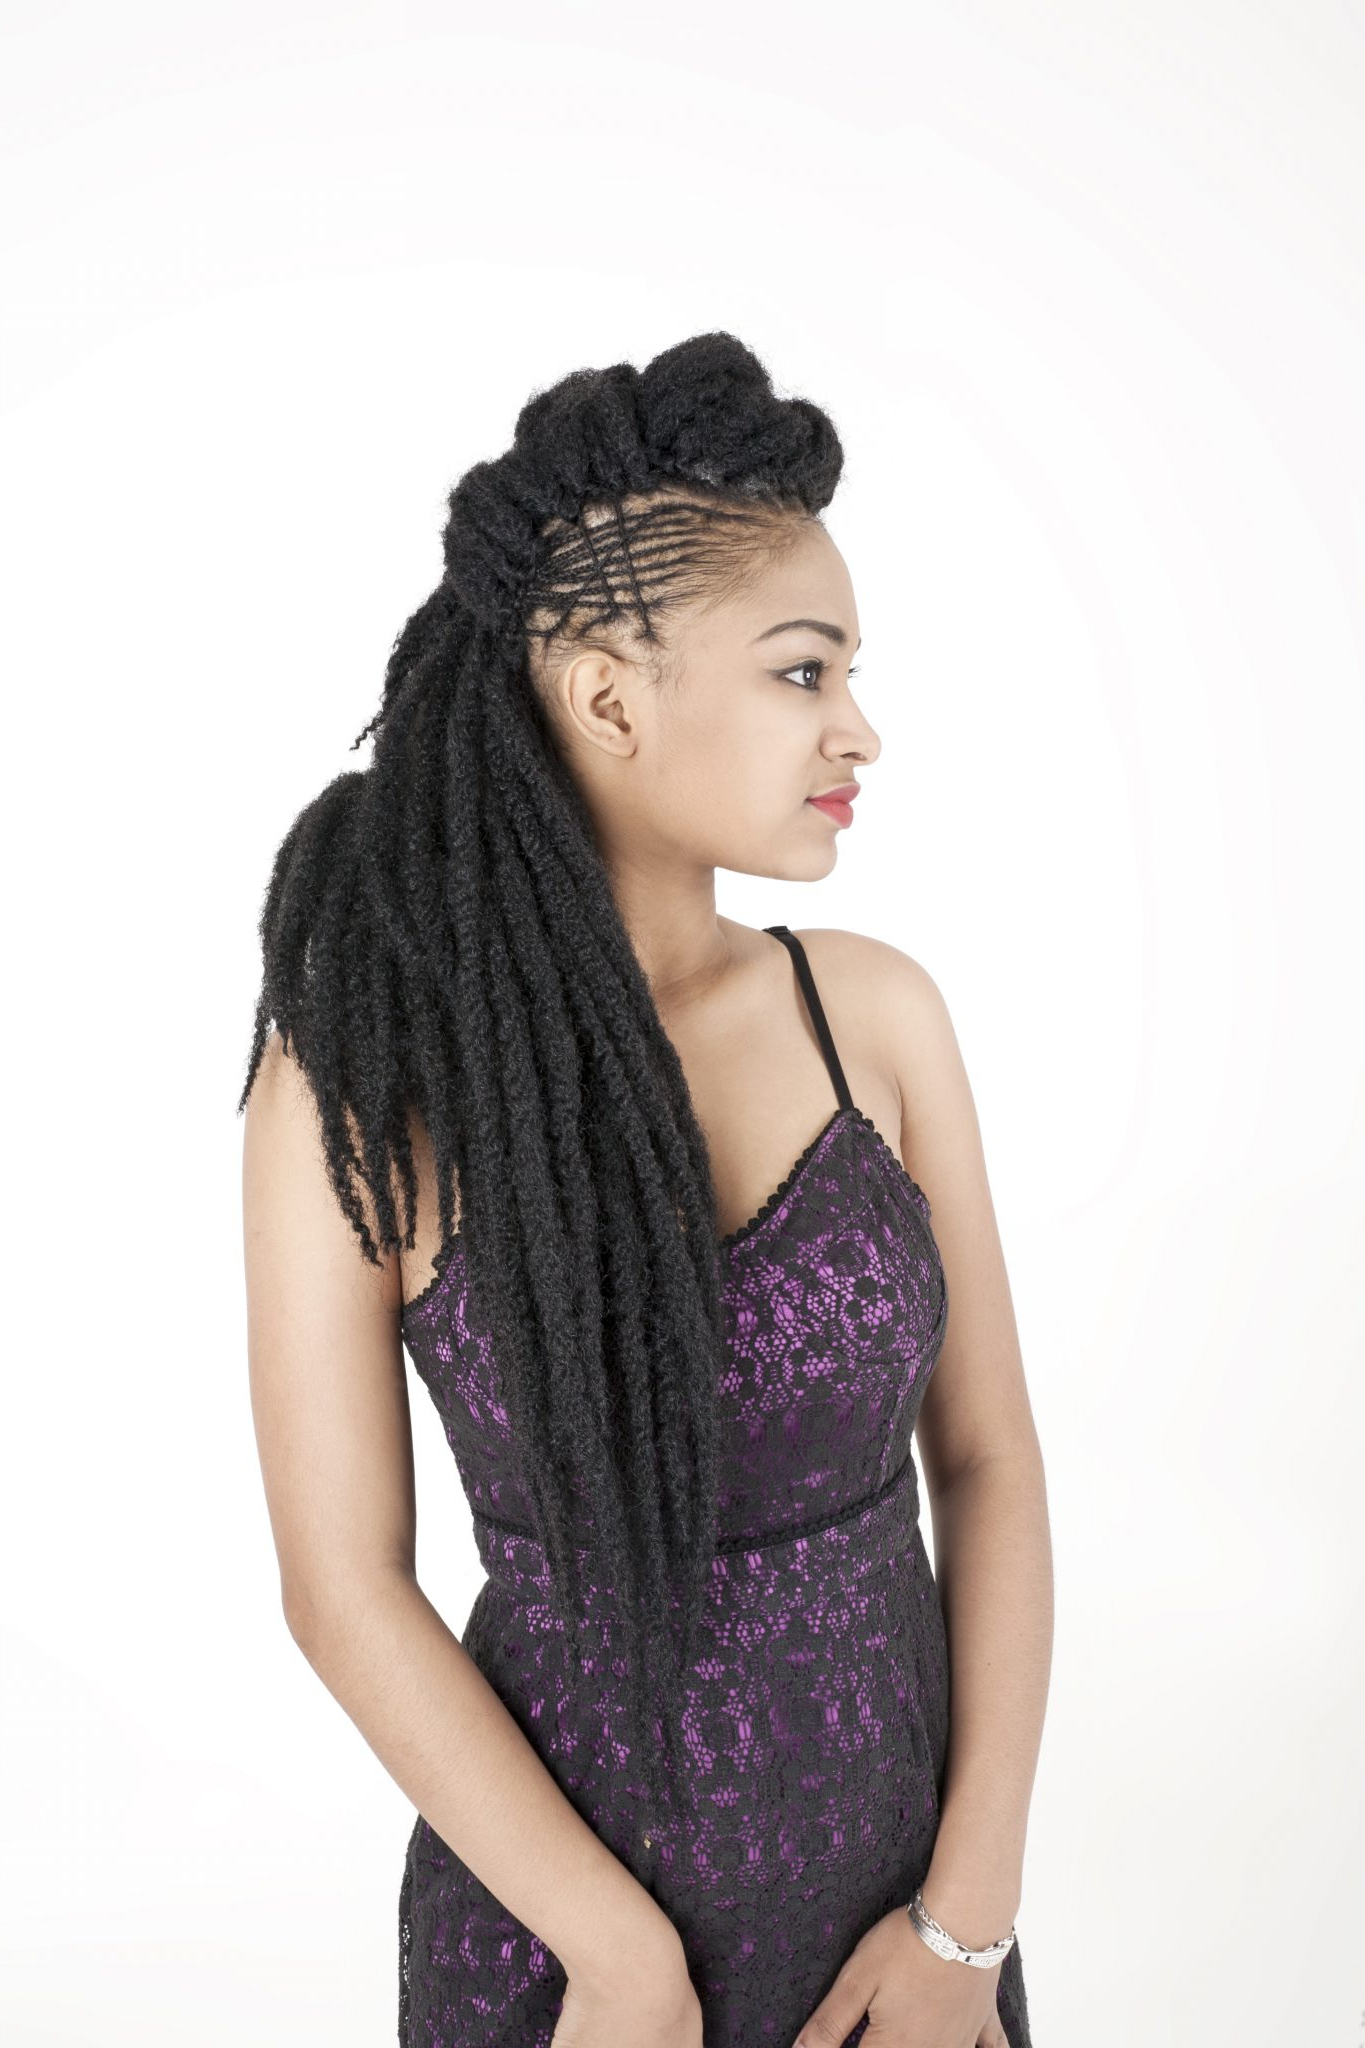 [%Recent Royal Braided Hairstyles With Highlights Throughout [Royal Silk Braid] Afro Twist Long Braid|[Royal Silk Braid] Afro Twist Long Braid Pertaining To Best And Newest Royal Braided Hairstyles With Highlights%] (View 1 of 20)